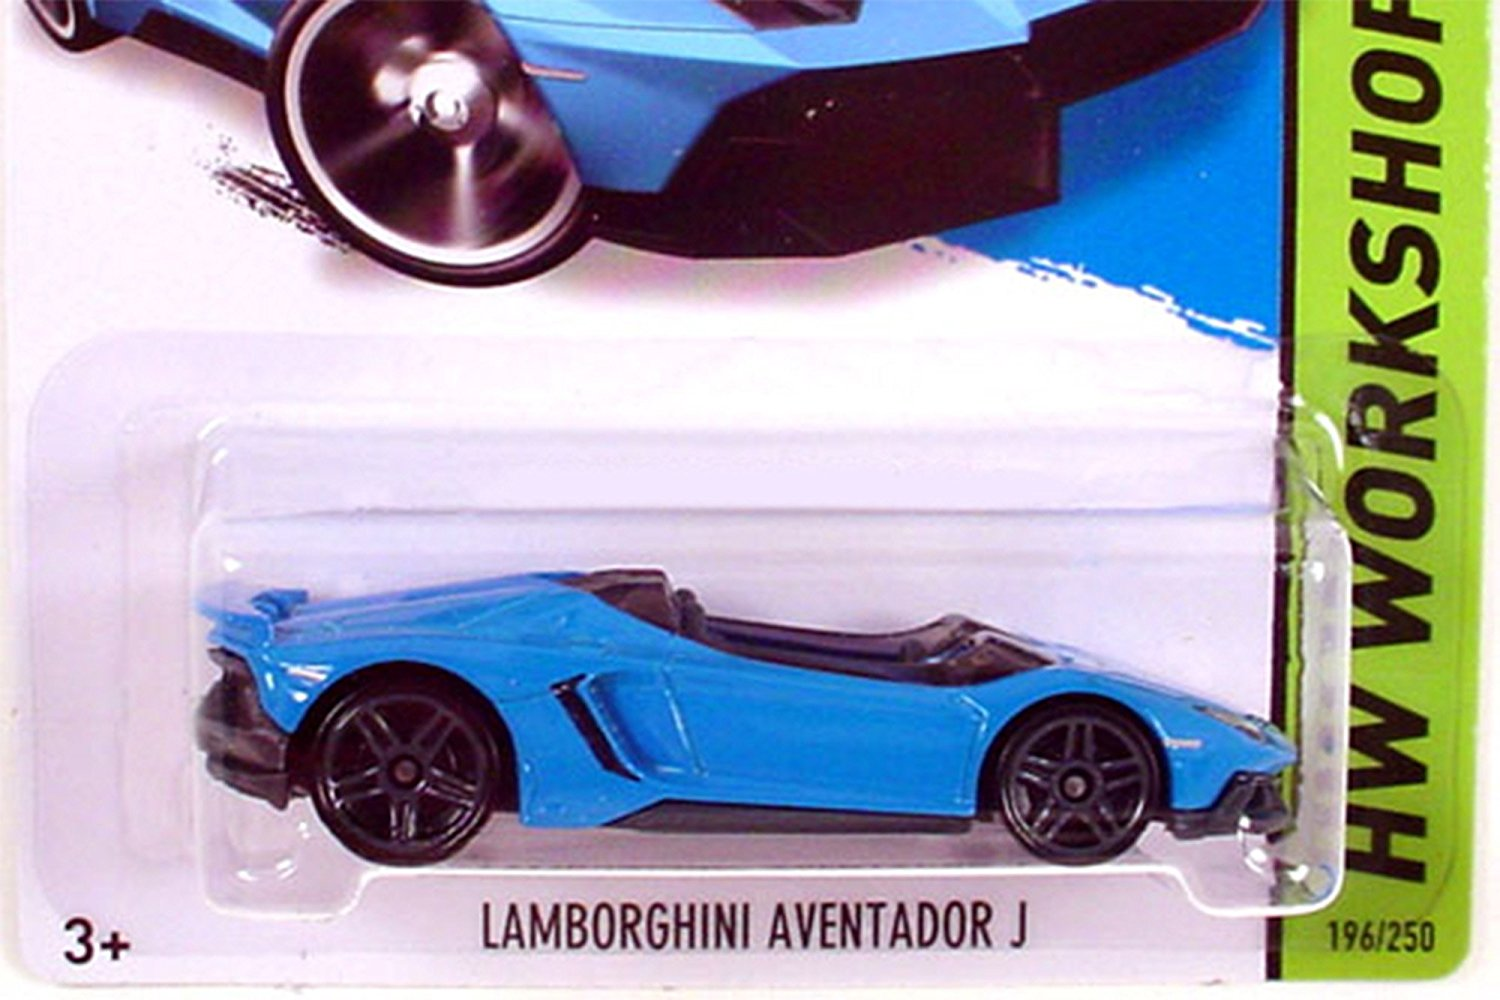 2014 Hw Workshop Lamborghini Aventador J   Blue, LAMBO AVENTADOR J Hot  Wheels 20143 HW